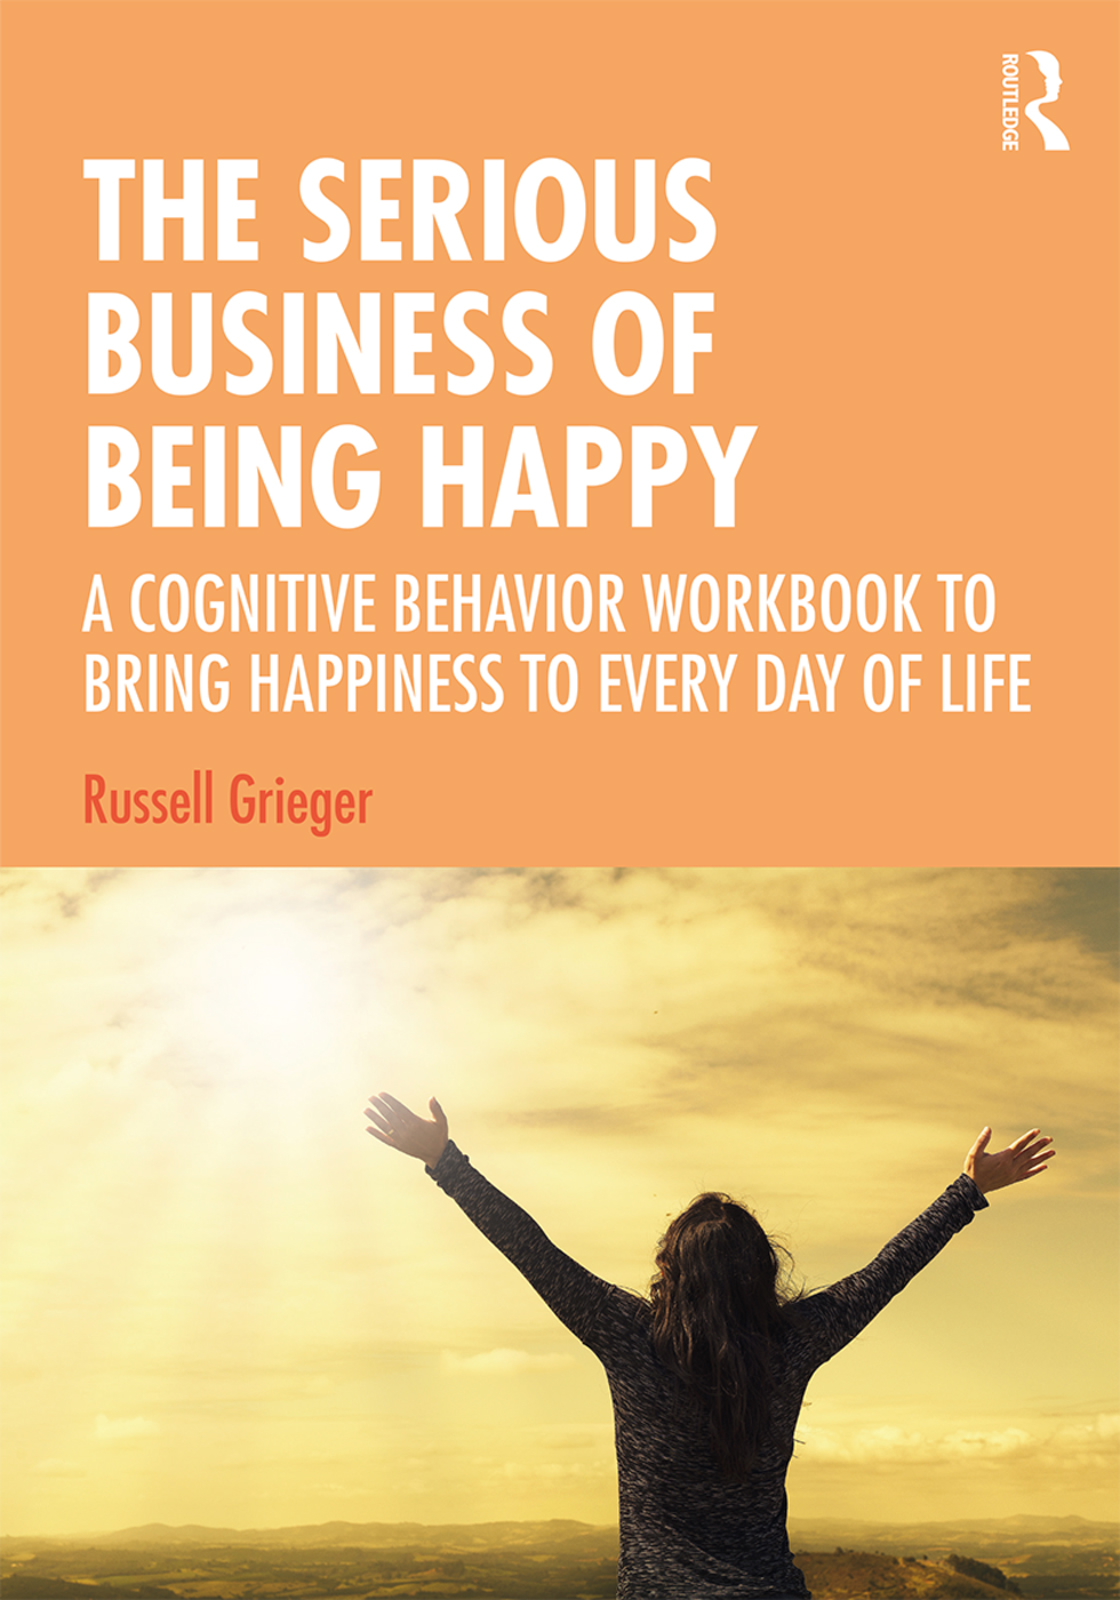 The Serious Business of Being Happy: A Cognitive Behavior Workbook to Bring Happiness to Every Day of Life book cover